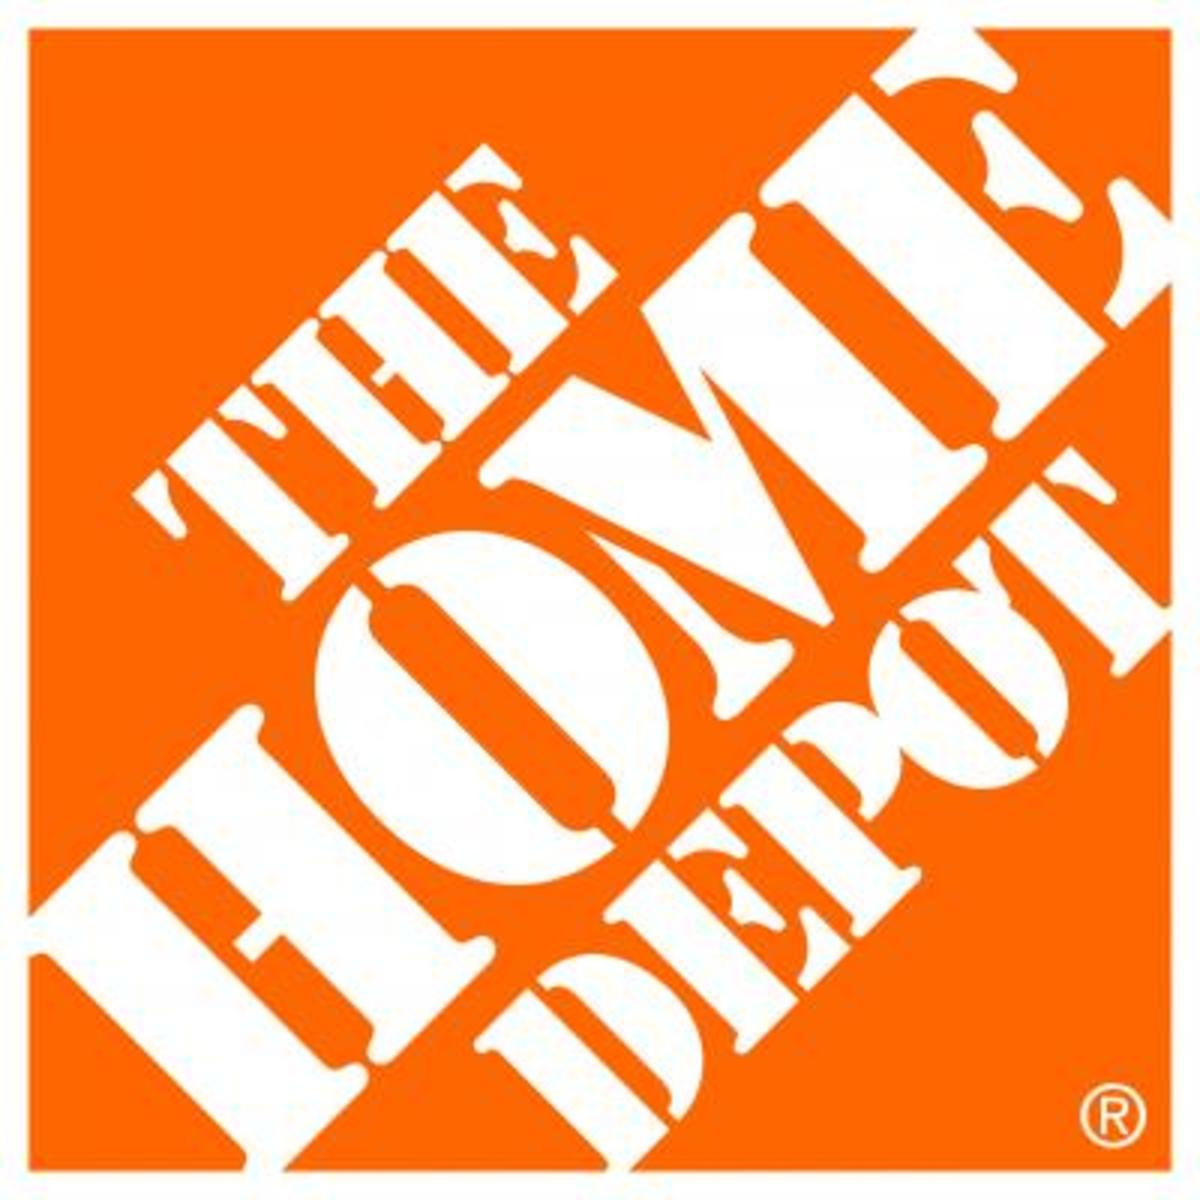 Should you work at The Home Depot? Read on to find out!